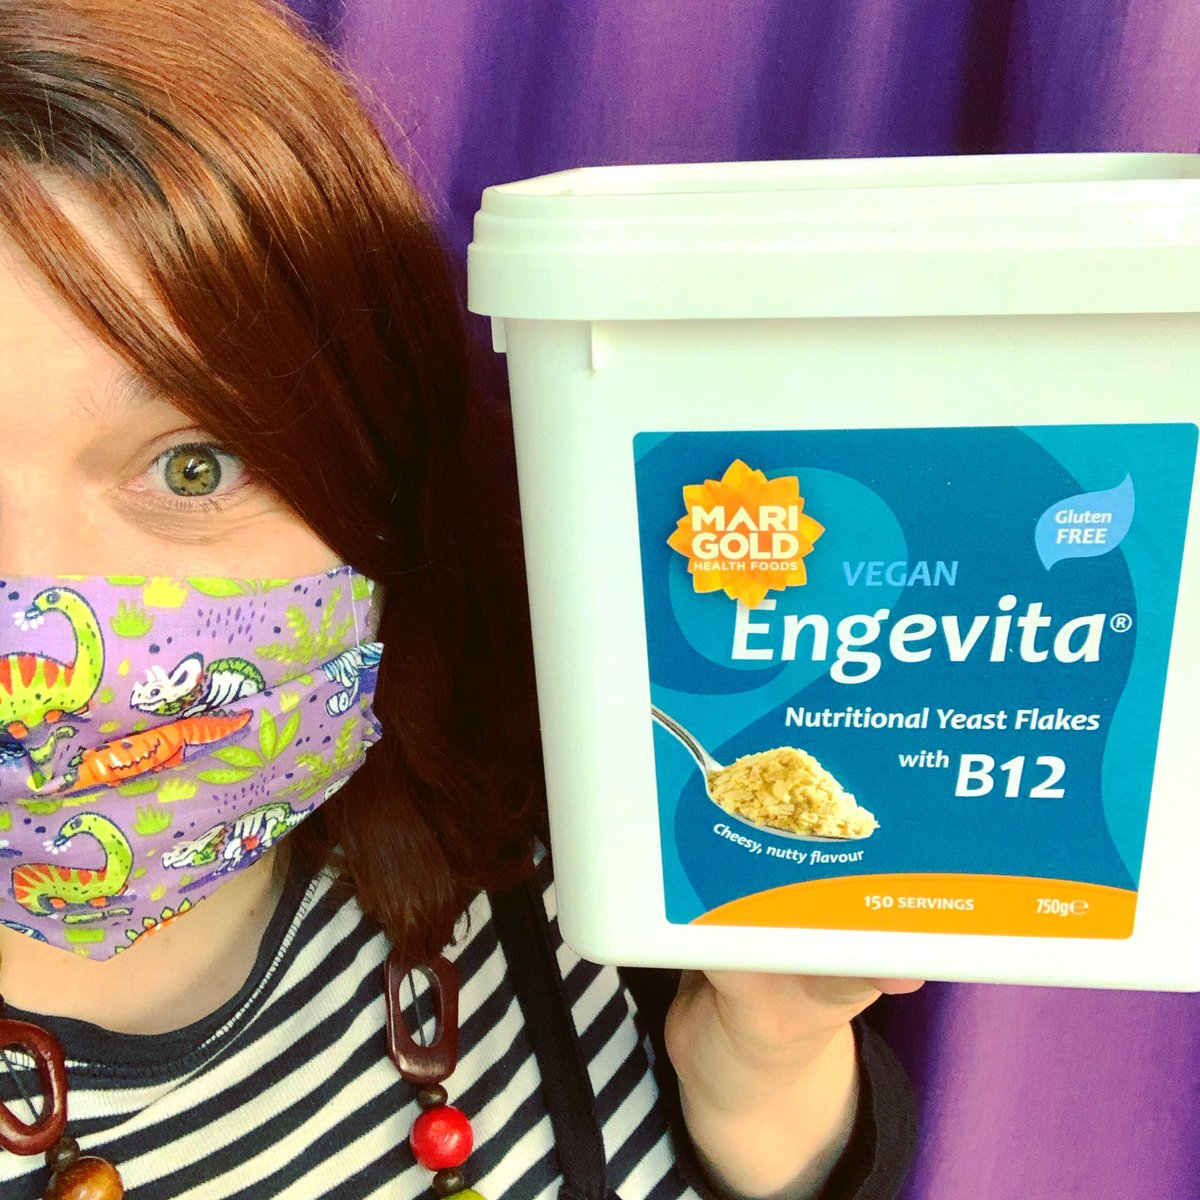 Big, HUGE, the size of Charlie's (big, huge) head tubs of everyone's favourite Marigold Engevita are now back in stock for those who NEED more than a regular size tub. Just look at this beauty!   Can't get in for your big huge nooch? Let us come to you! DM for more info! #Vegan https://t.co/hYlNUiRjV4